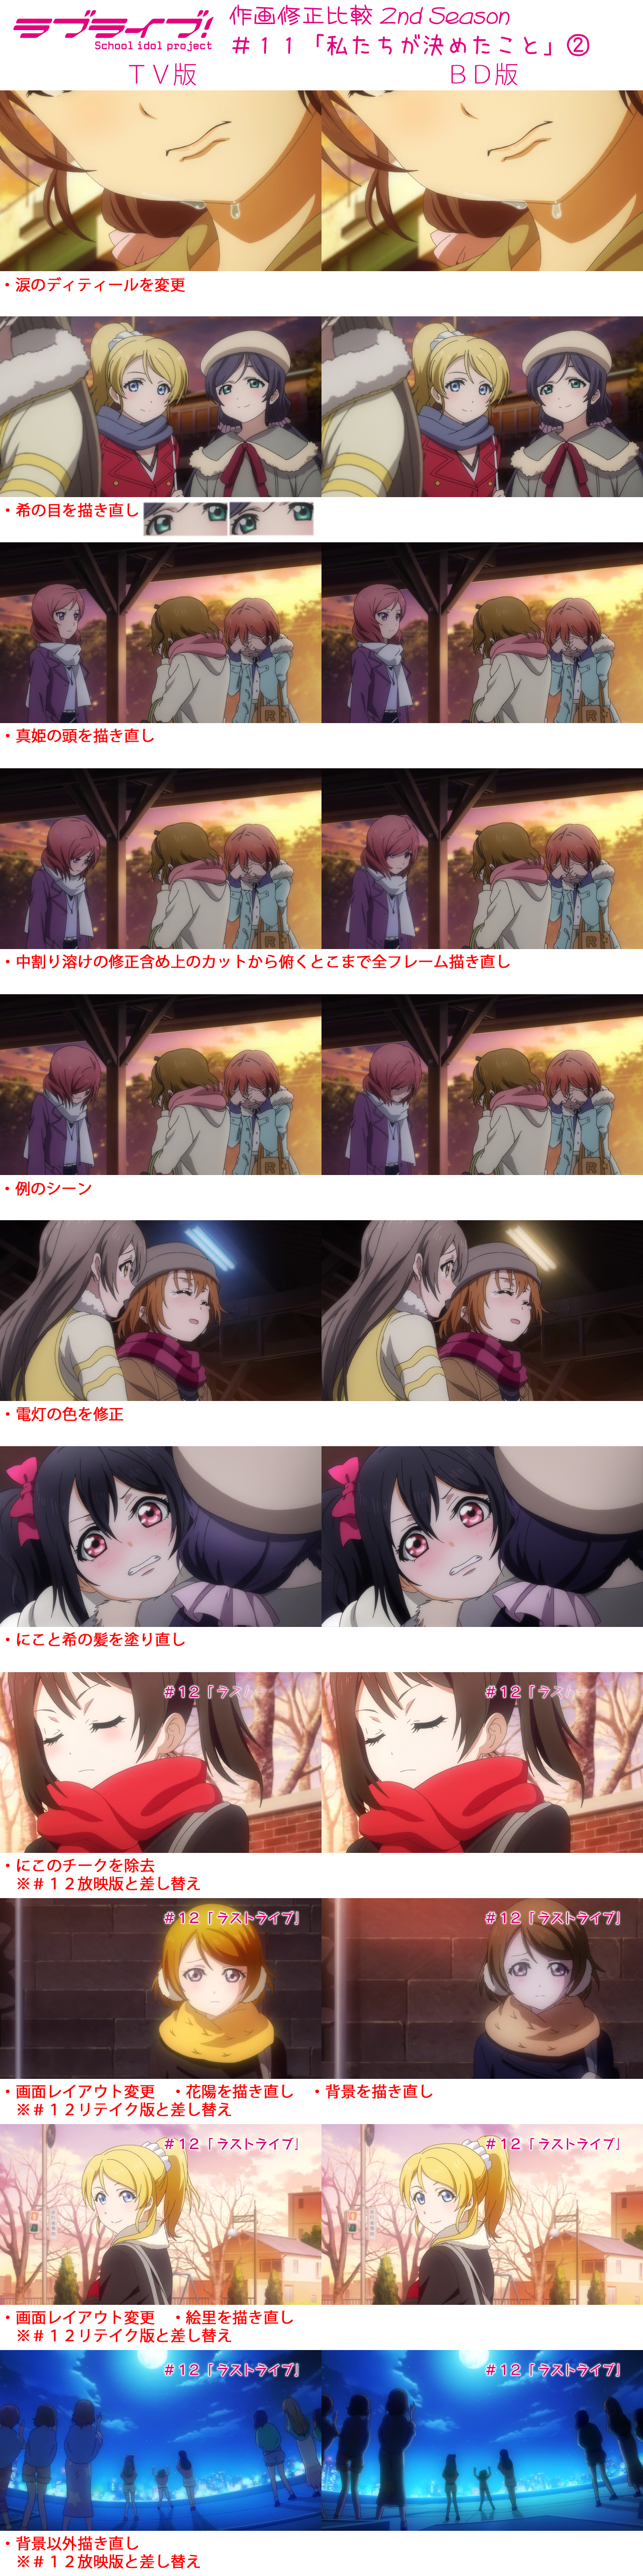 Love-Live!-School-Idol-Project-Season-2-TV-Blu-Ray-Comparison-Episode-11-Part-2